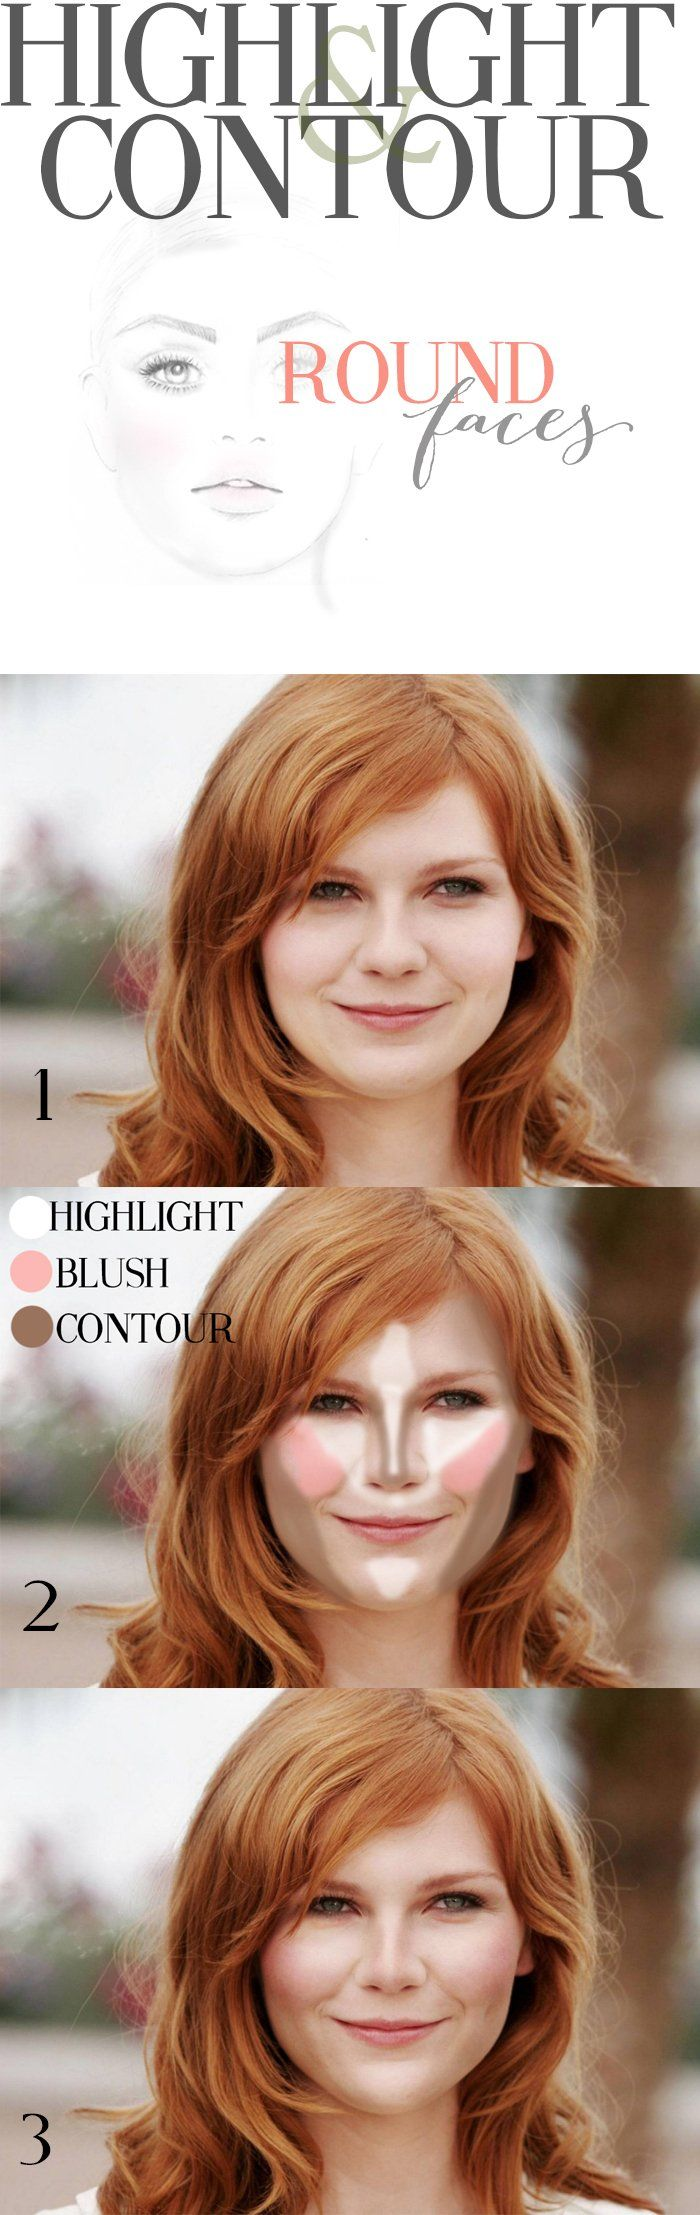 Highlight and Contour {round faces}